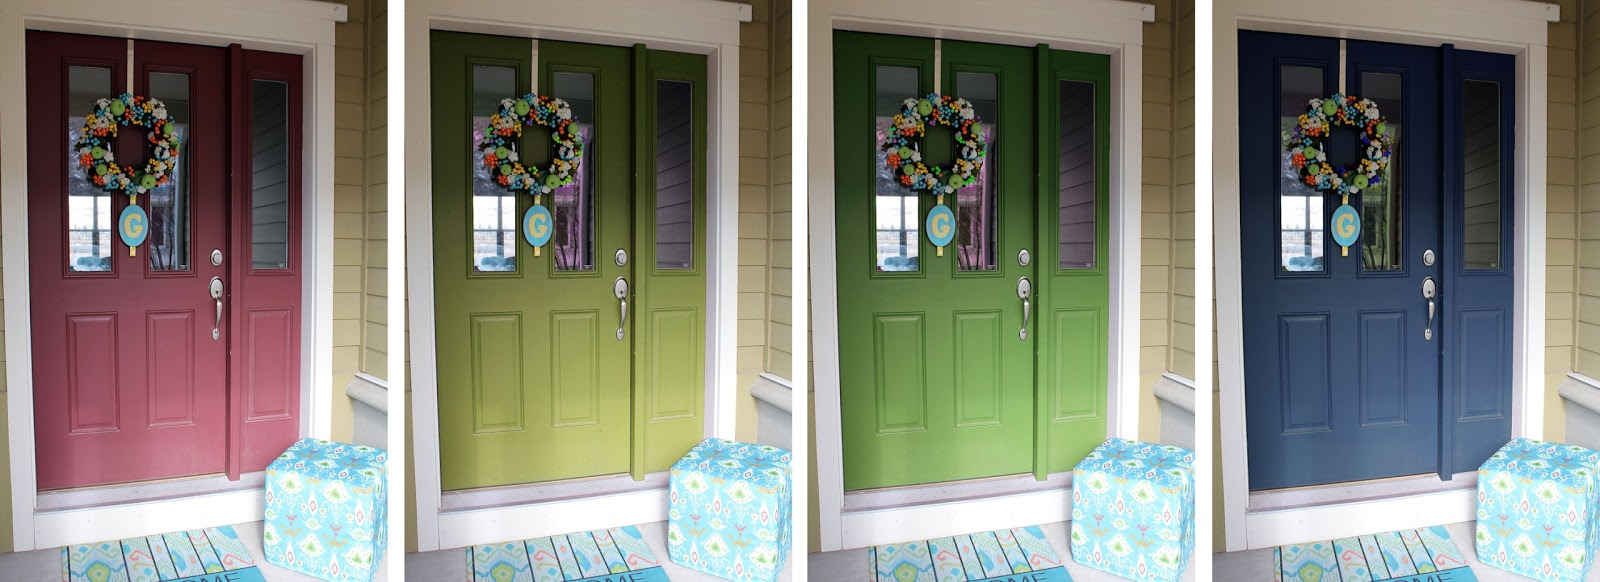 Lovely Changing The Color Of The Front Door